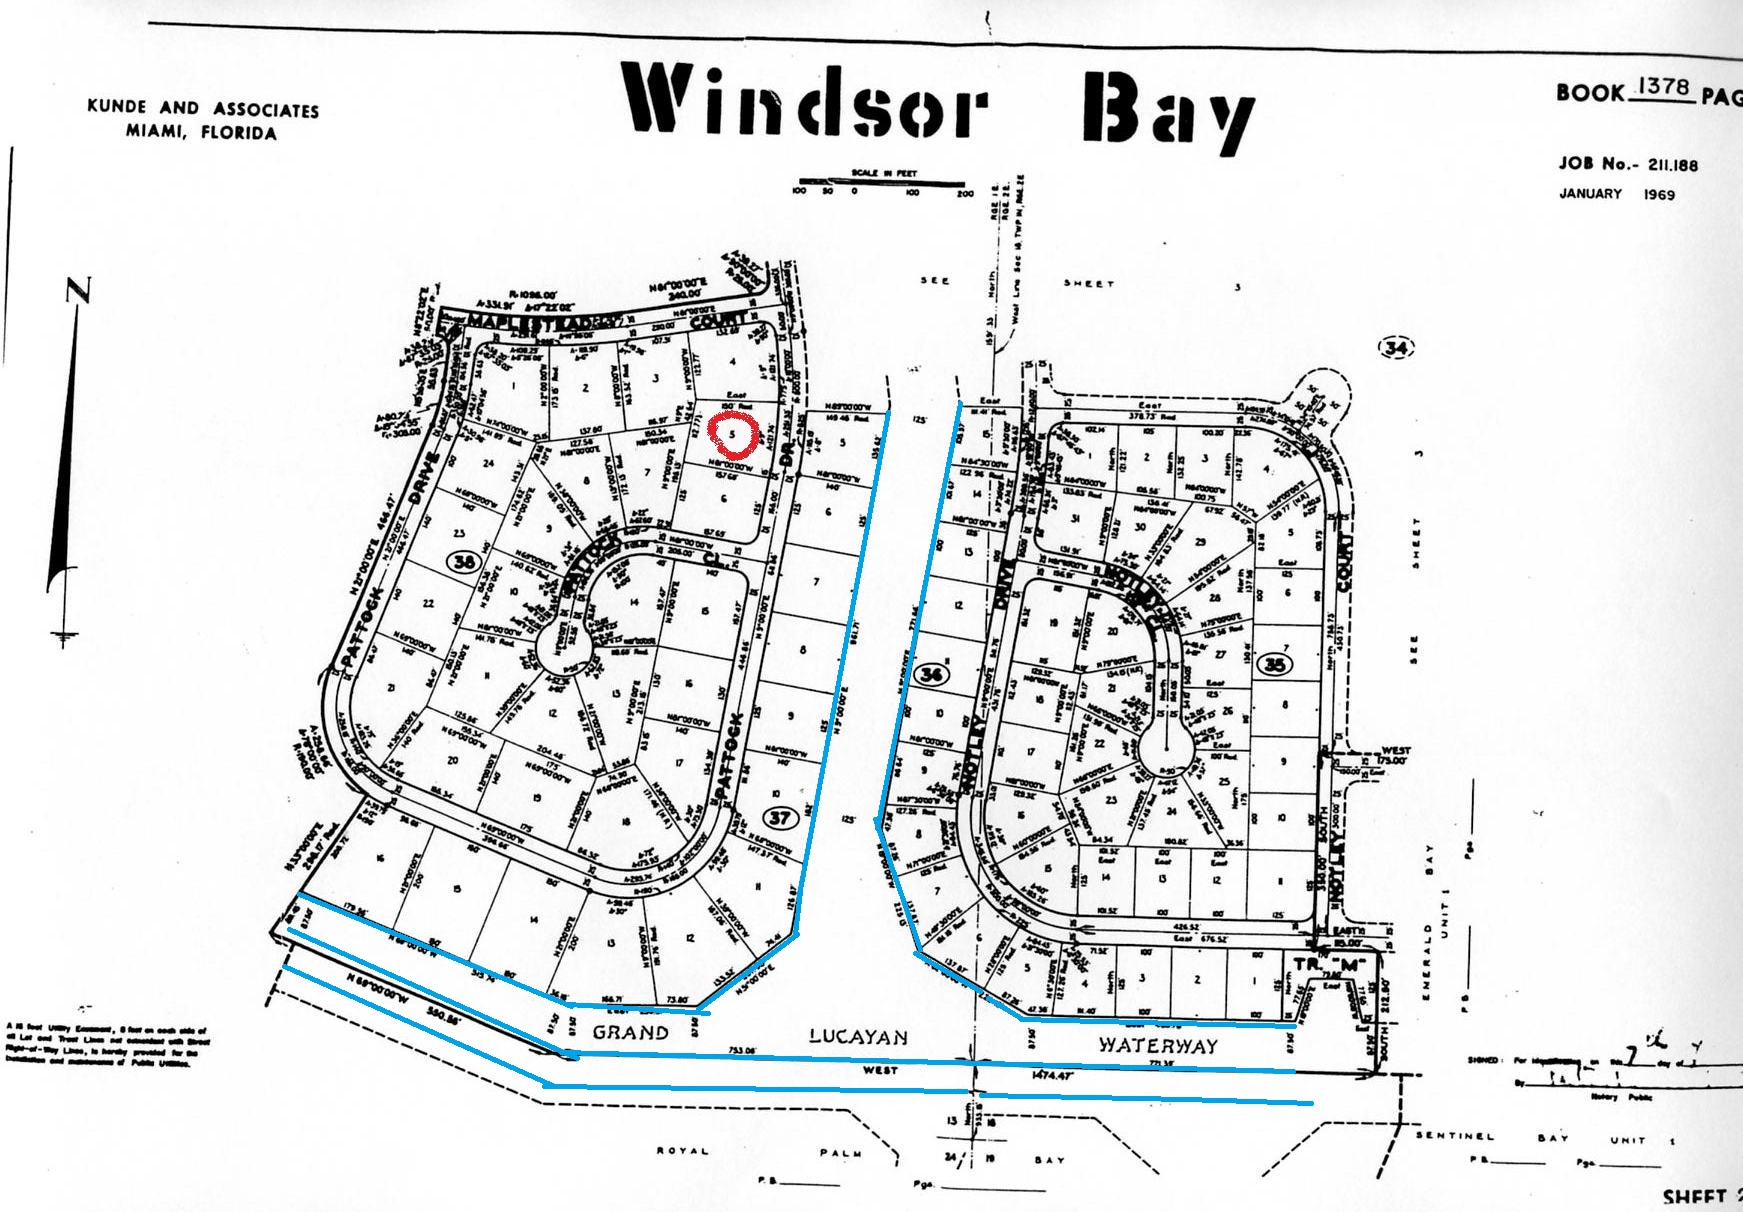 Windsor Bay, Block 38, Lot 5